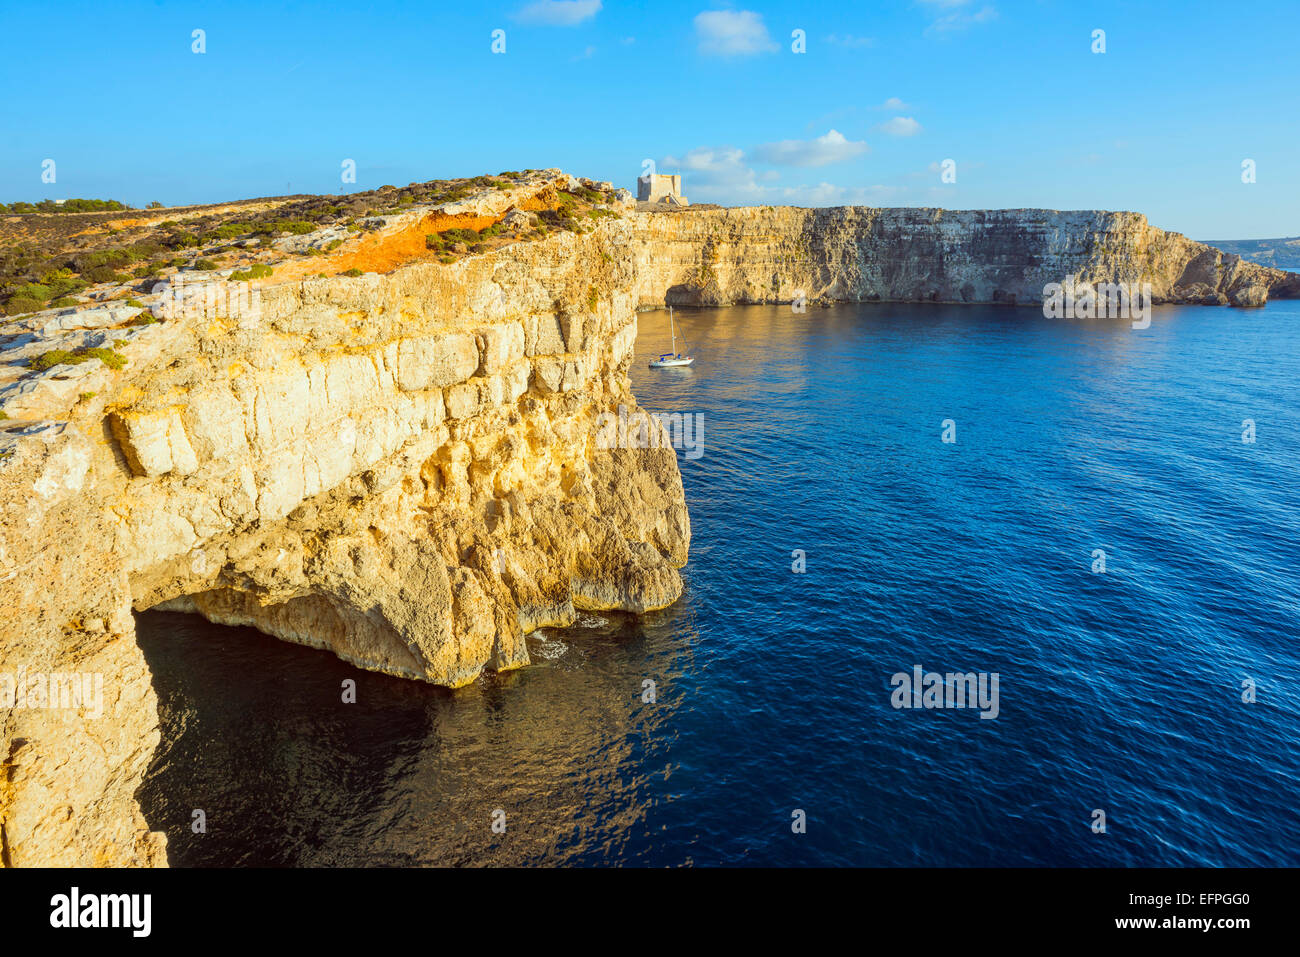 Cliff top watch tower, Comino island, Malta, Mediterranean, Europe - Stock Image